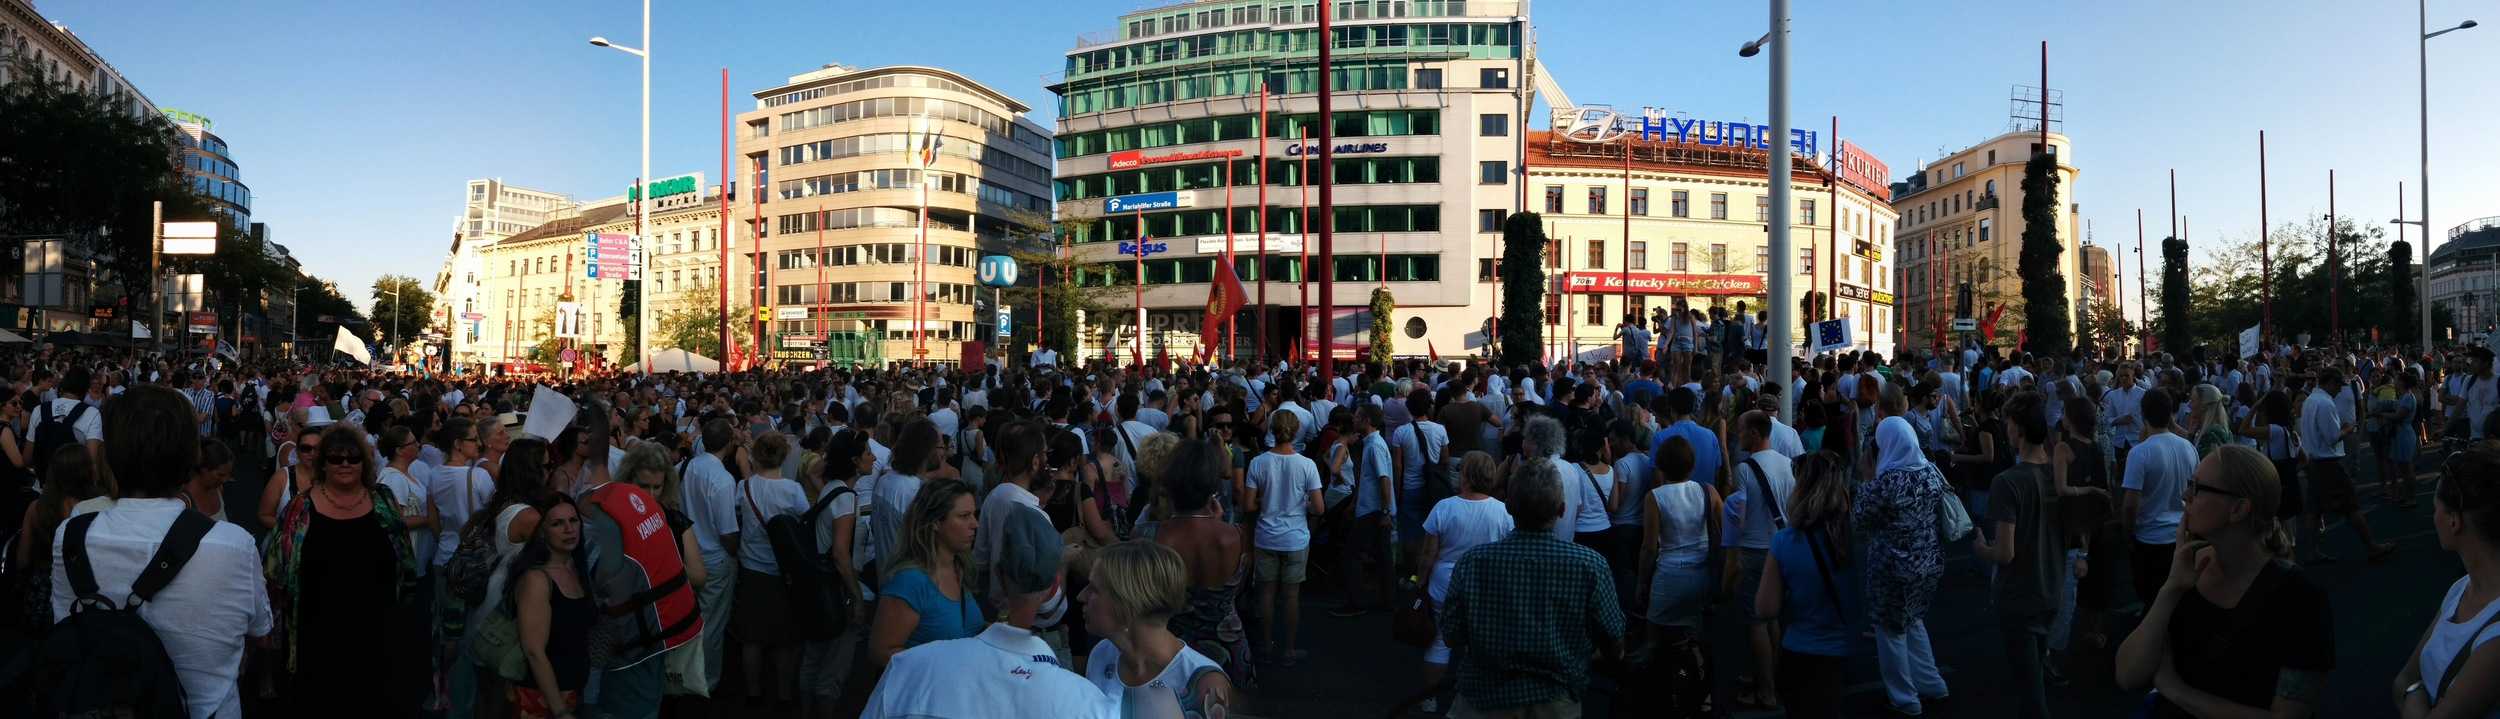 Some of an estimated 20,000 people engaging with their social environment at a demonstration for refugees in Vienna on 31 August 2015.